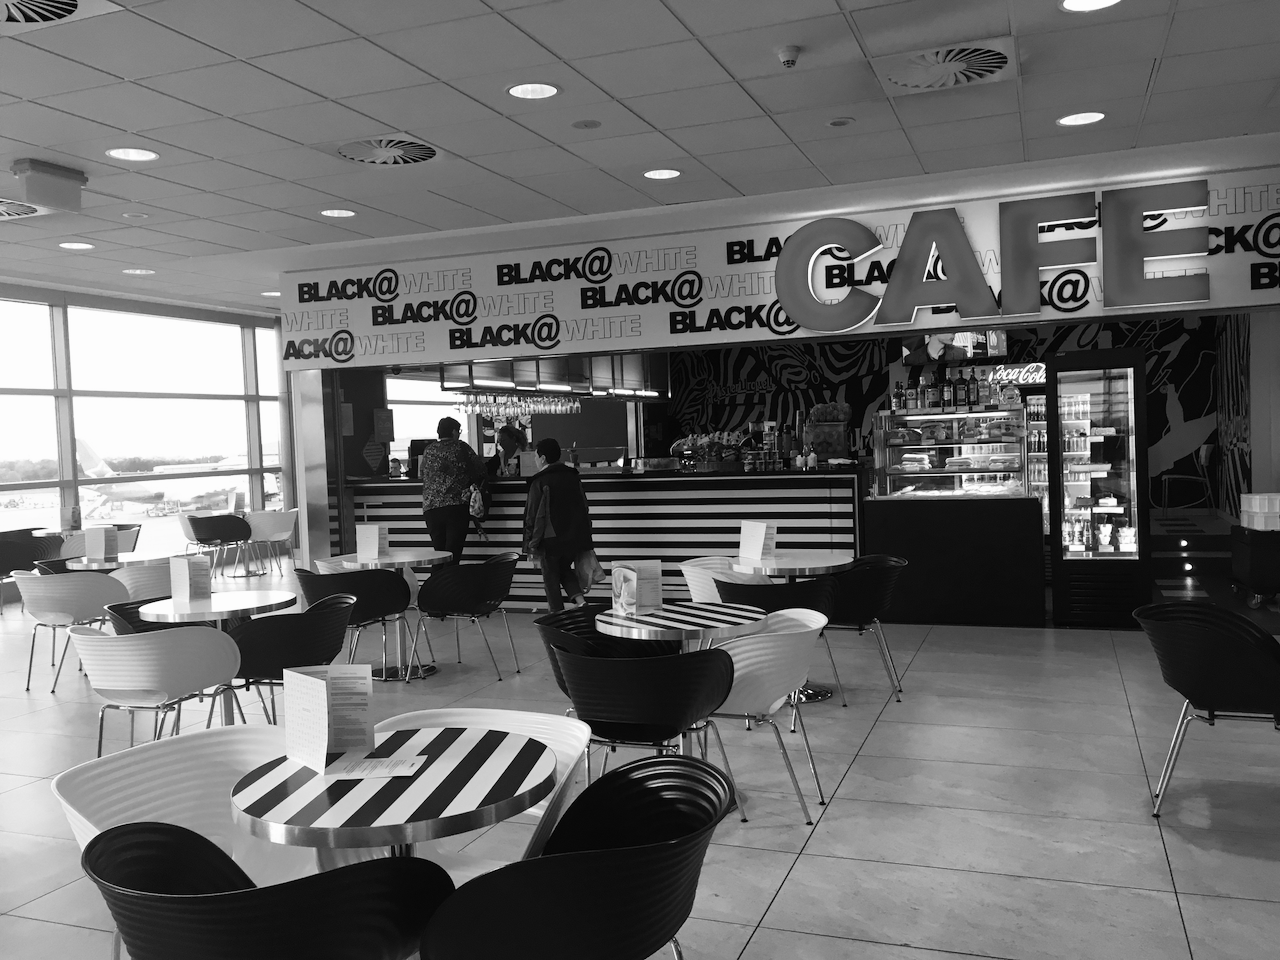 """Cafe """"Black@White"""" in the Vaclav Havel airport, Prague"""